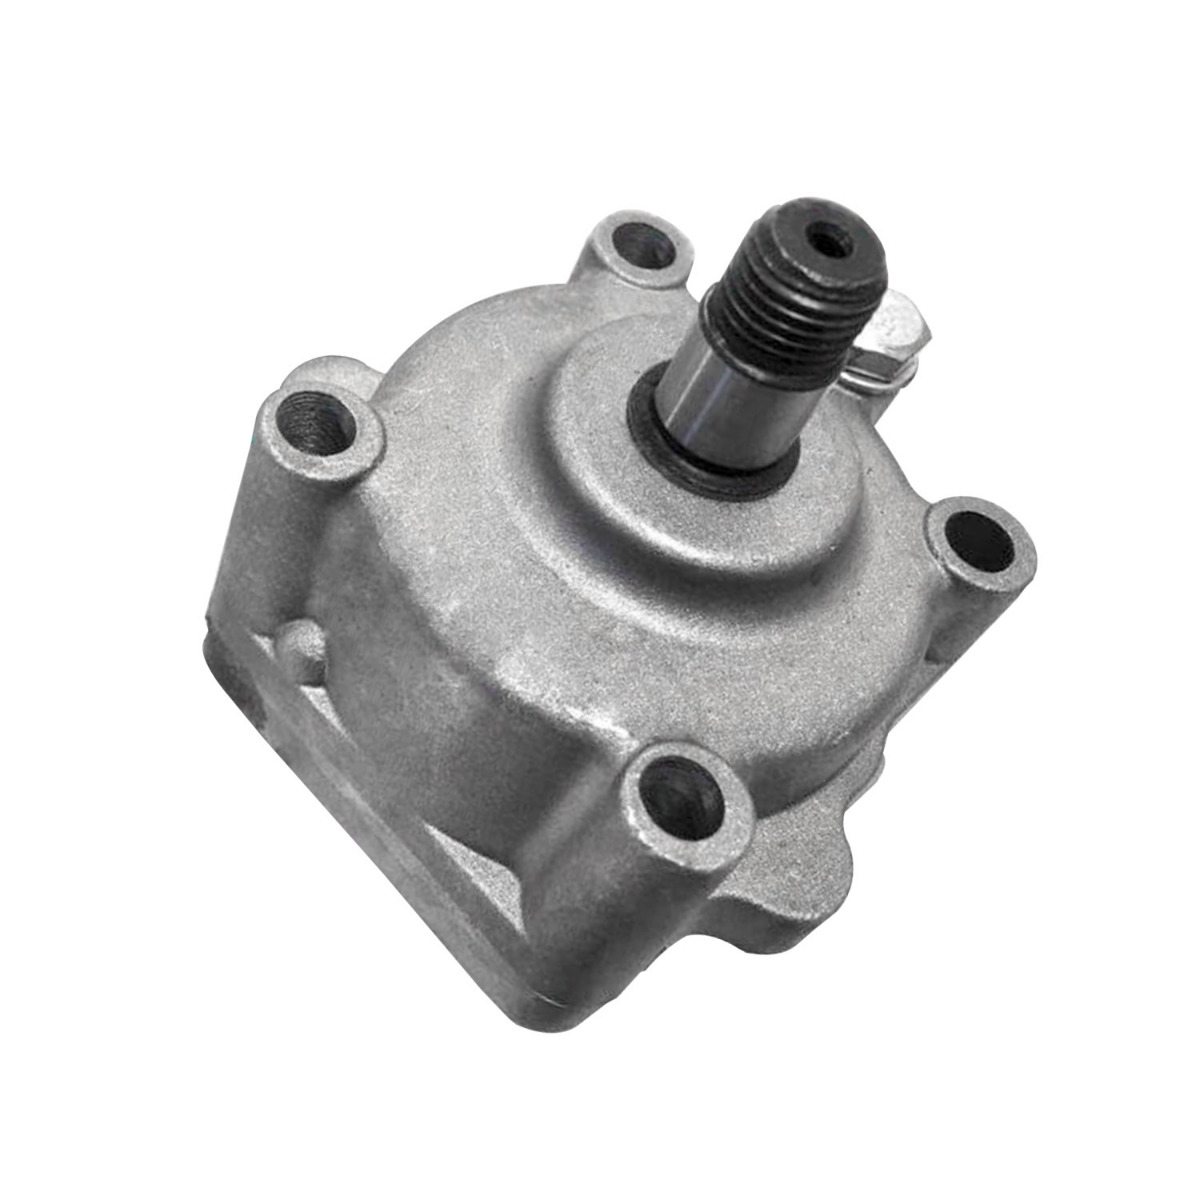 Oil Pump 25-37040-00 Compatible with Carrier CT 4.134